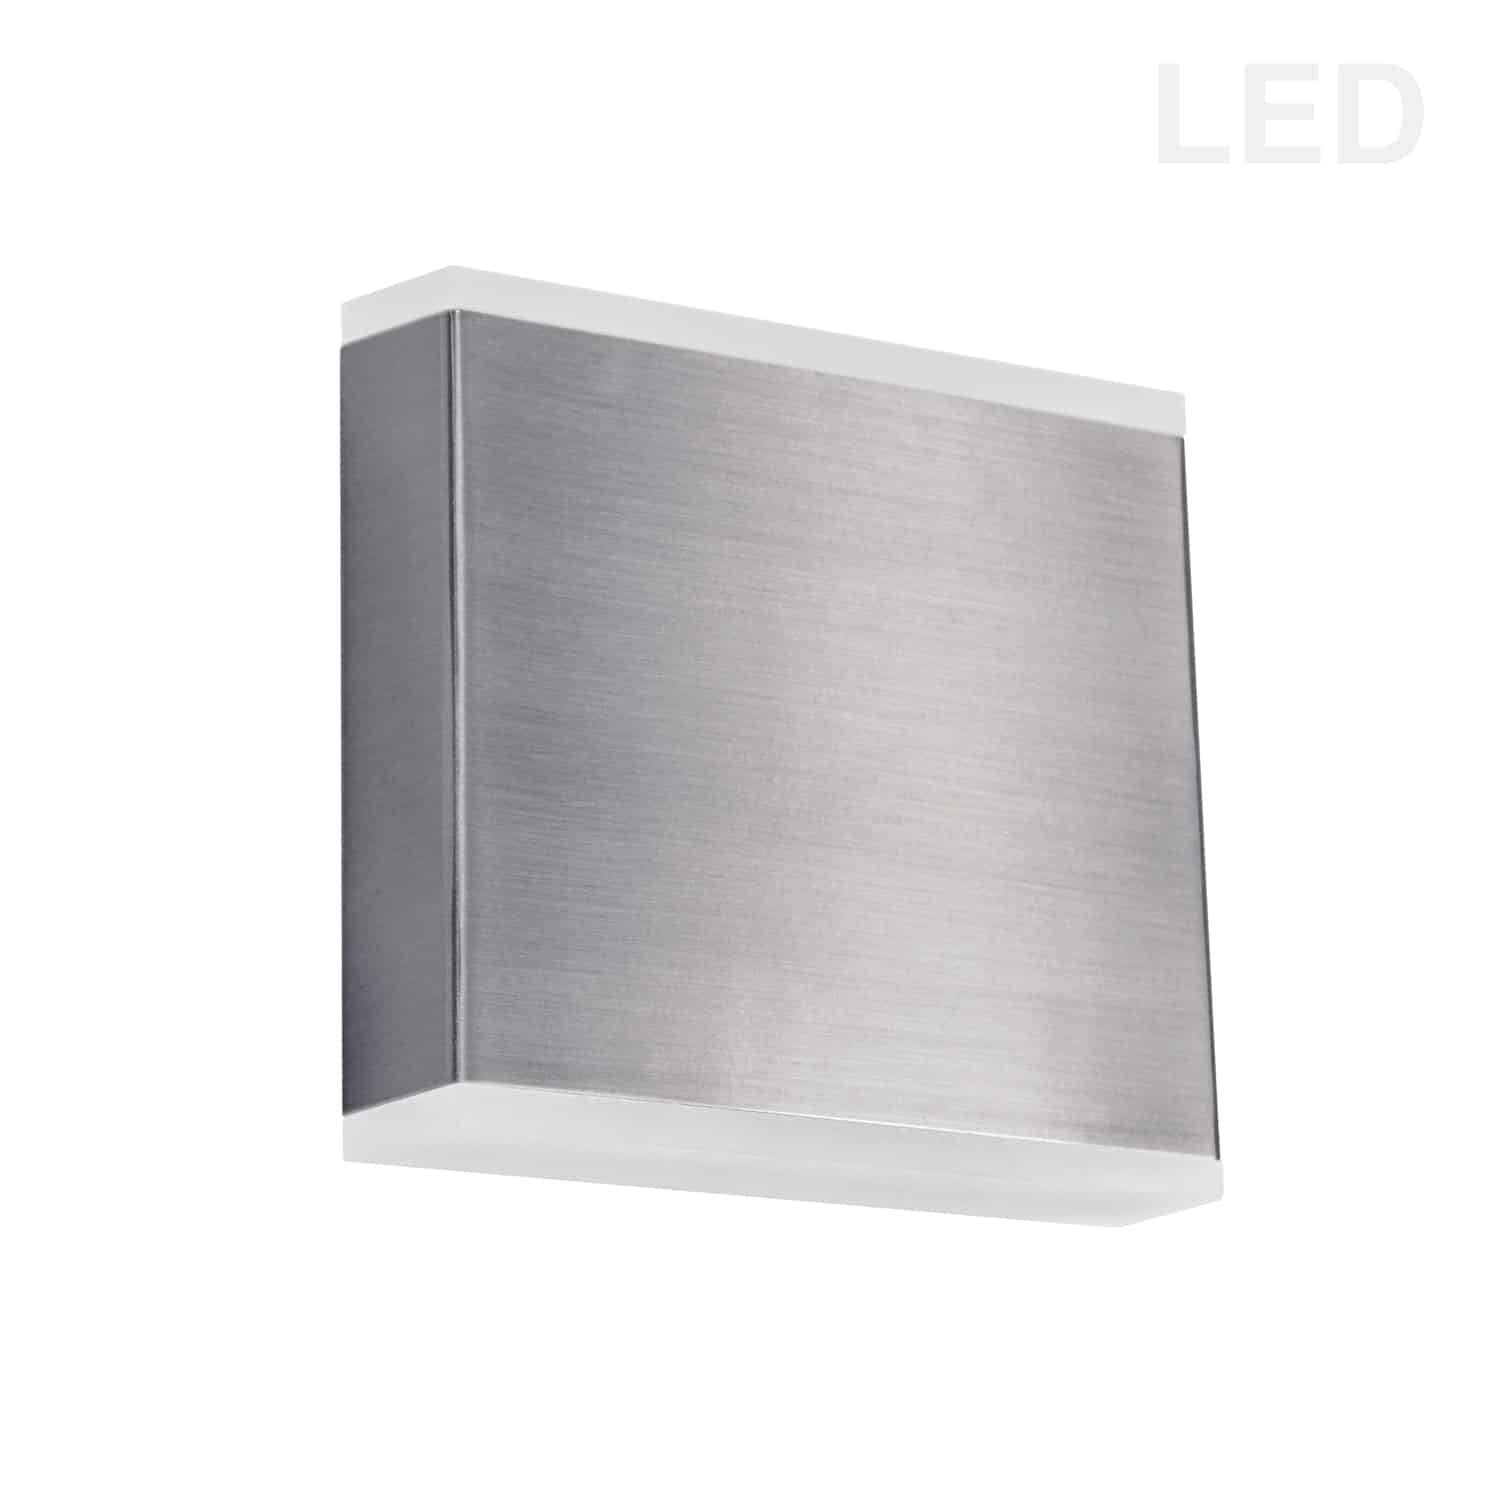 15W LED Wall Sconce, Satin Chrome with Frosted Acrylic Diffuser